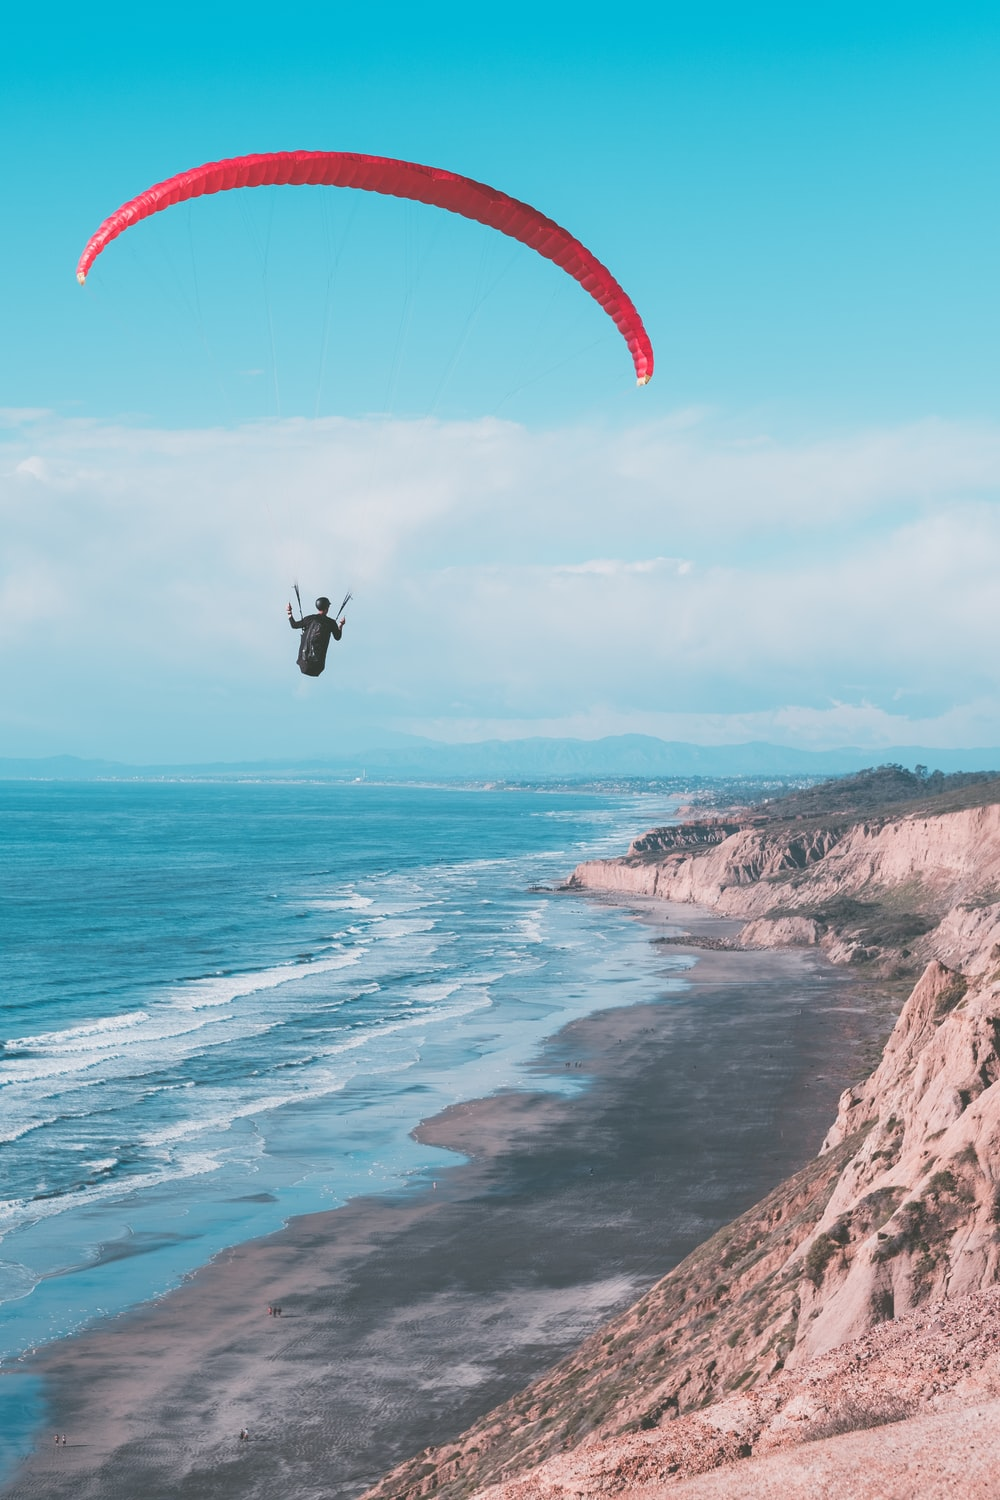 500+ Parachute Pictures [HD] | Download Free Images on Unsplash